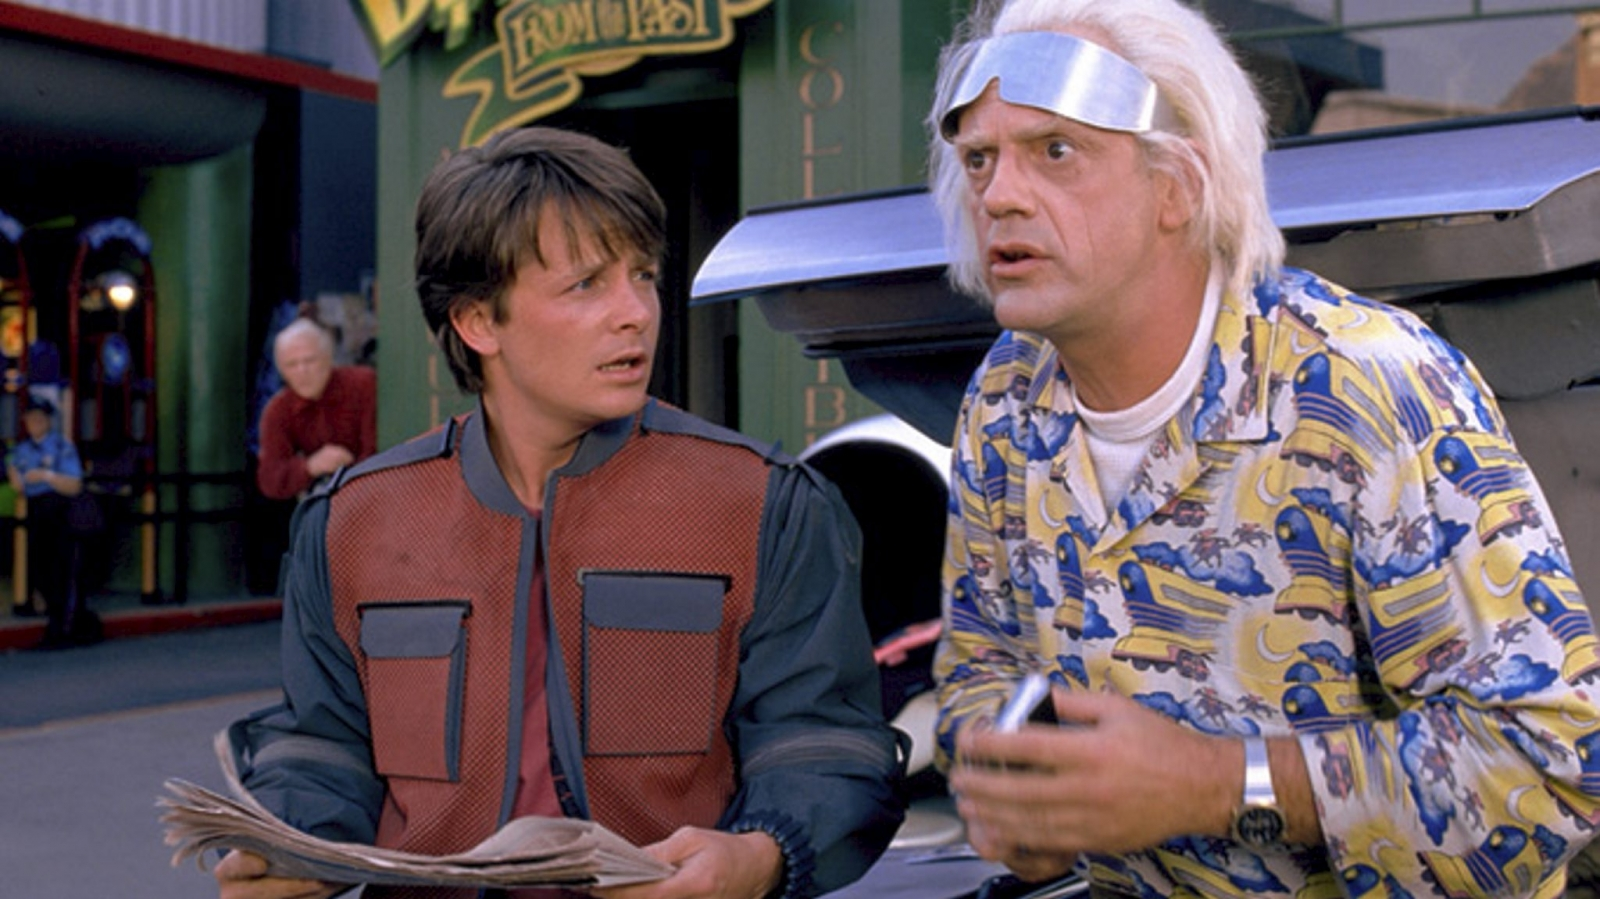 marty-mcfly-doc-brown-visit-year-2015-ba